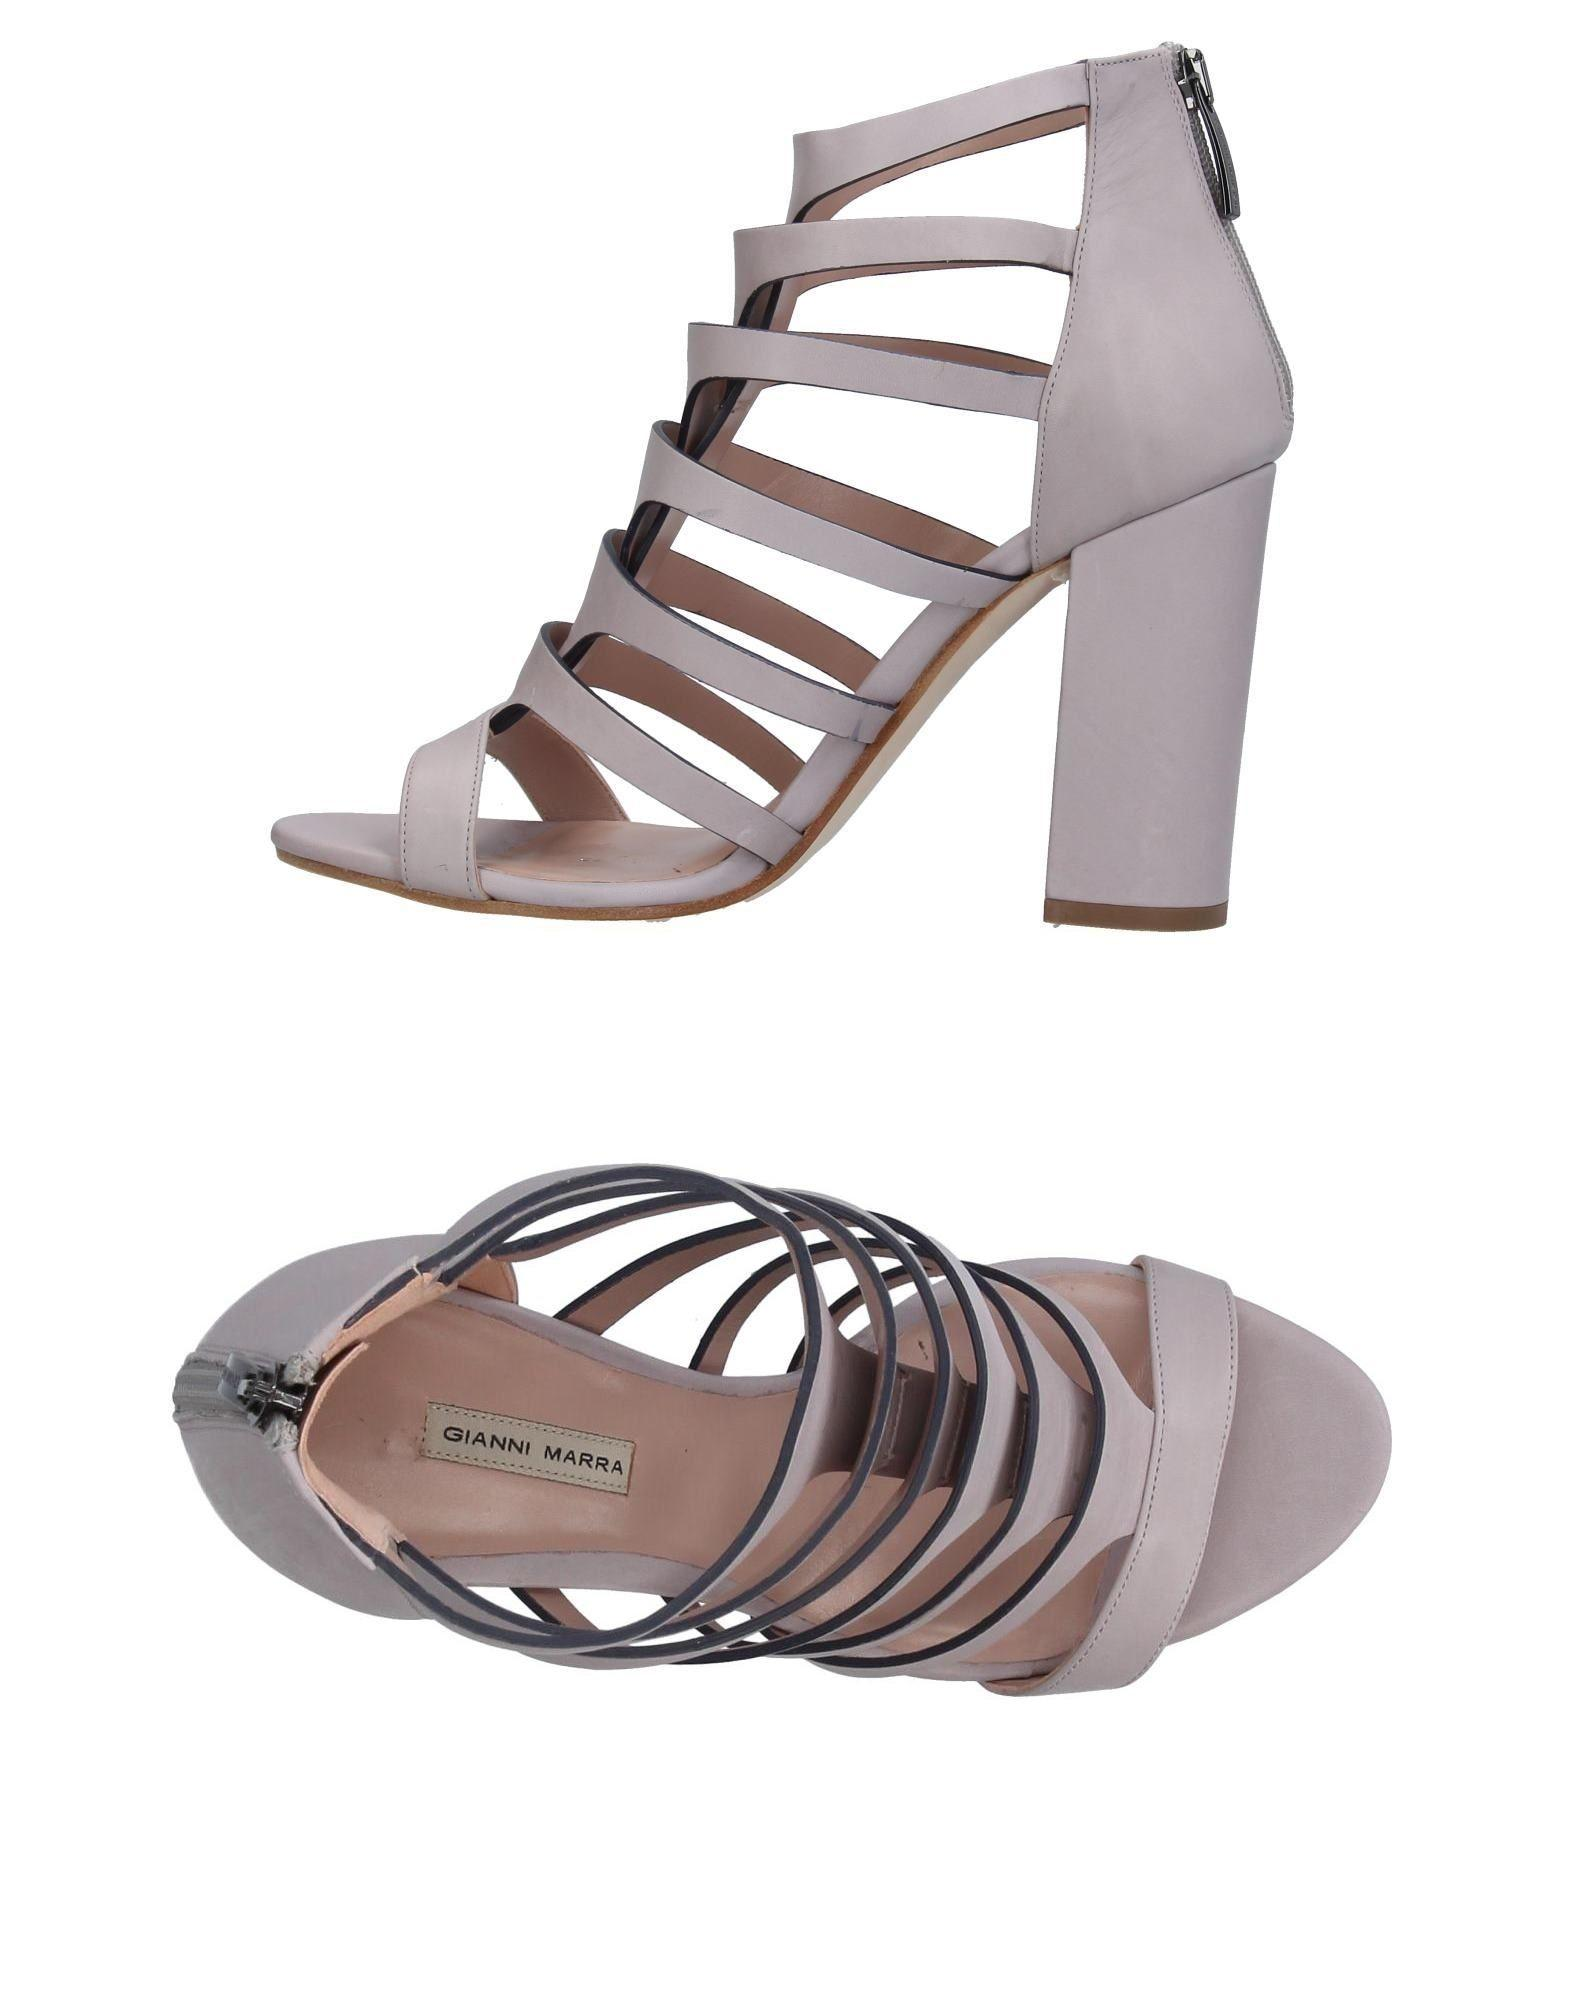 Gianni Marra Sandals In Lilac